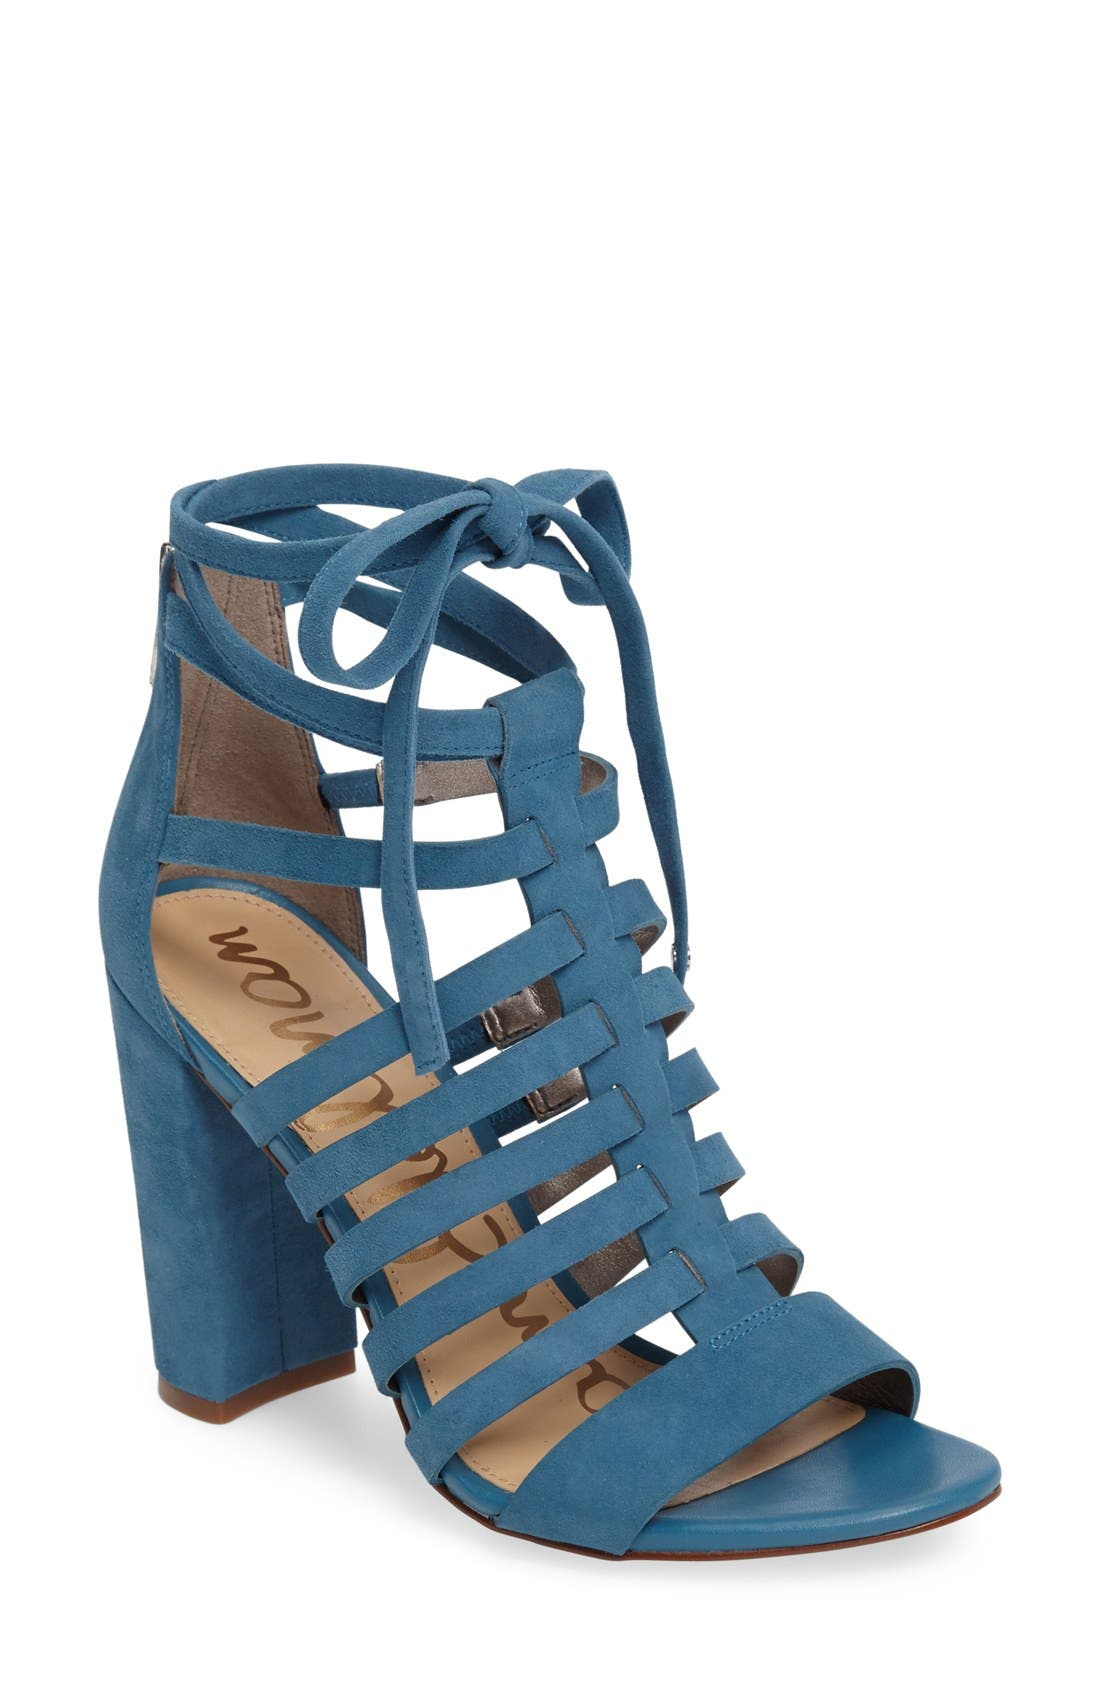 Alternate Image 1 Selected - Sam Edelman Yarina Sandal (Women)